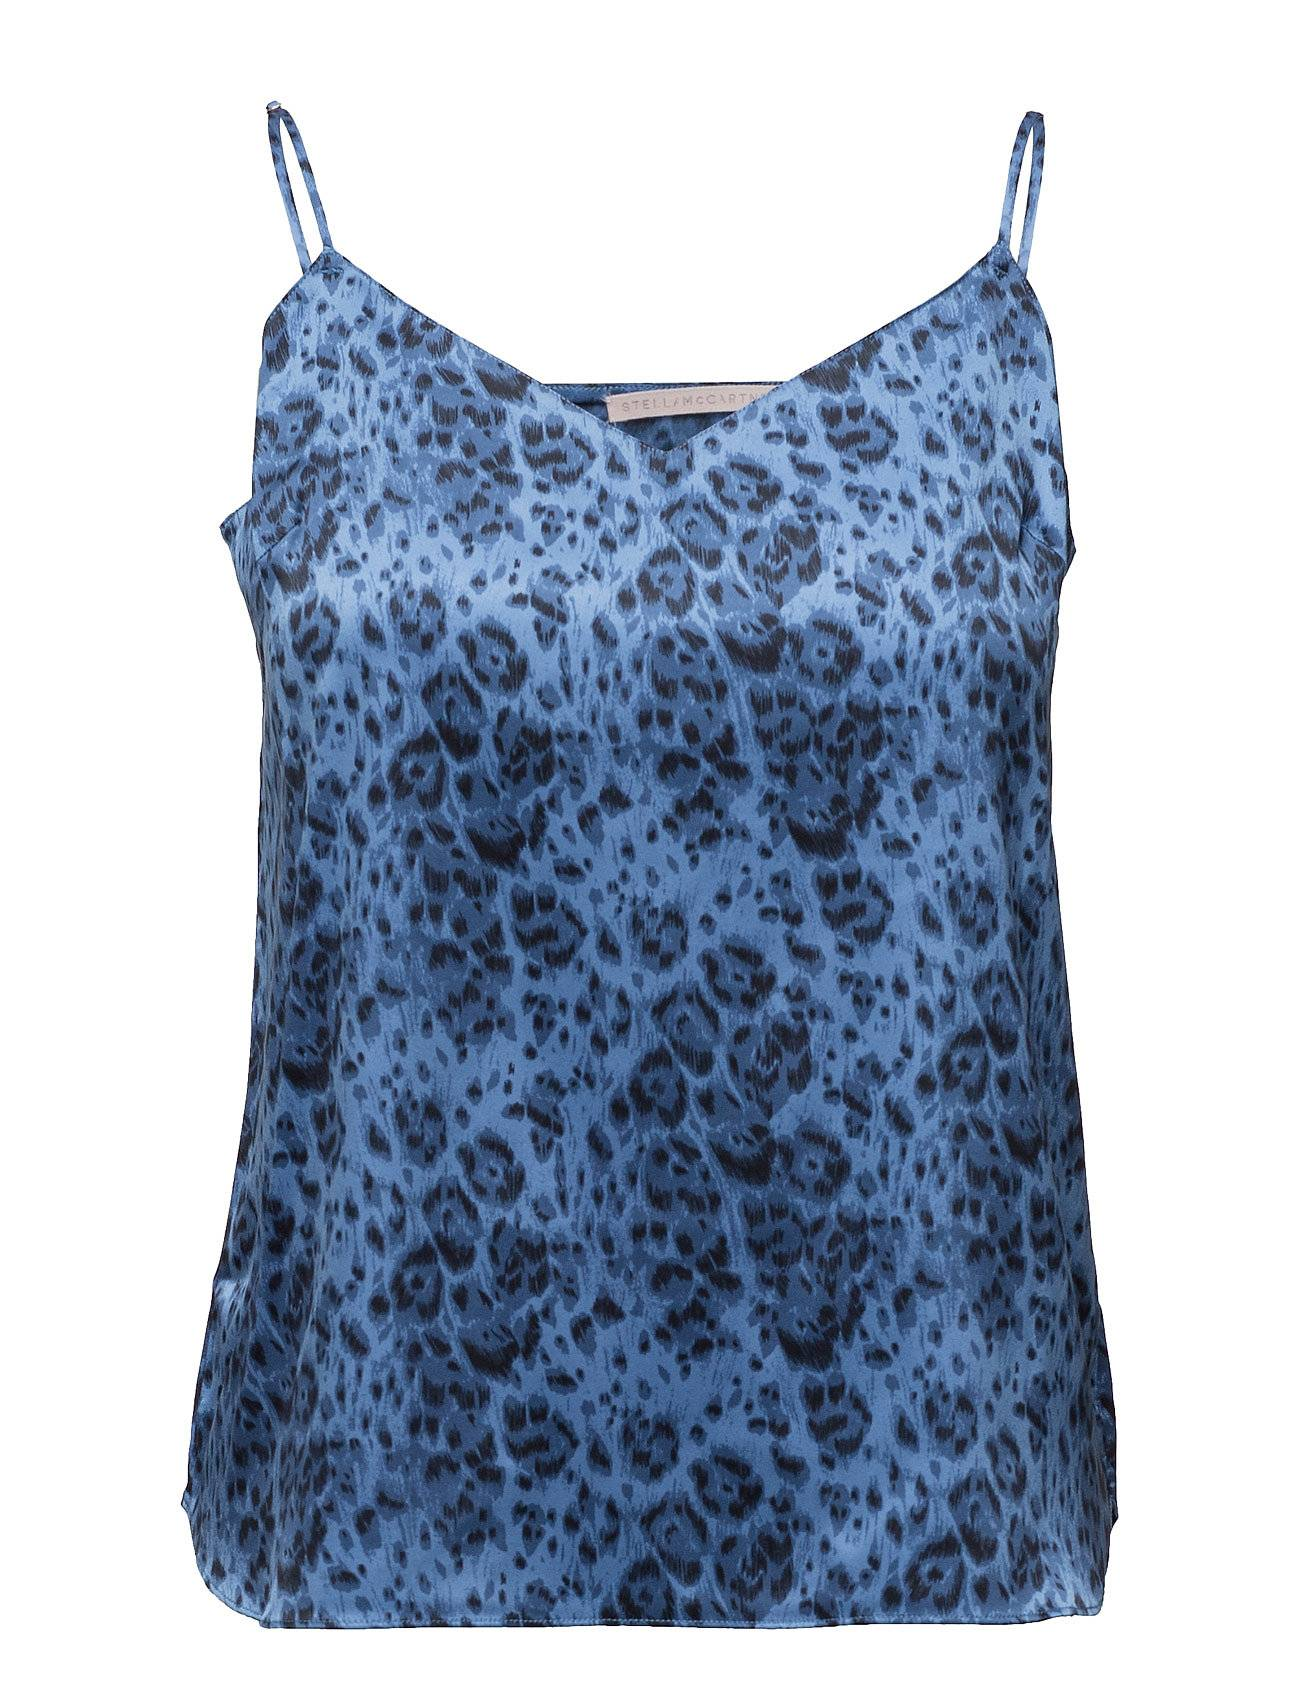 Stella McCartney Lingerie Camisole Ellie Leaping